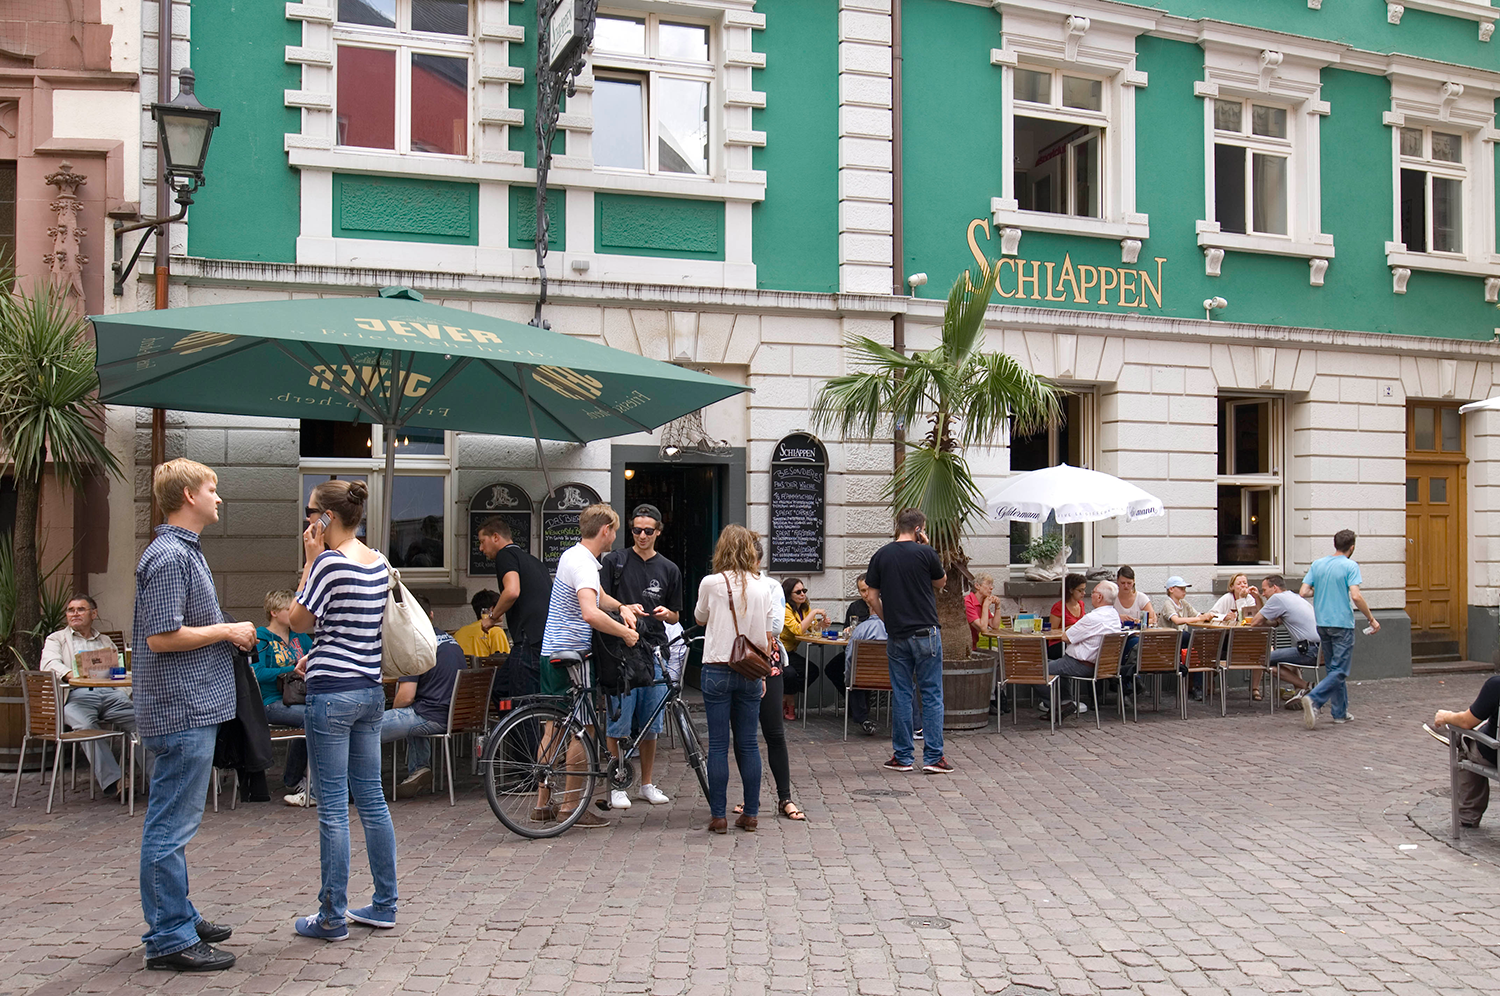 People standing or walking on a street with cobblestones in front of a café.